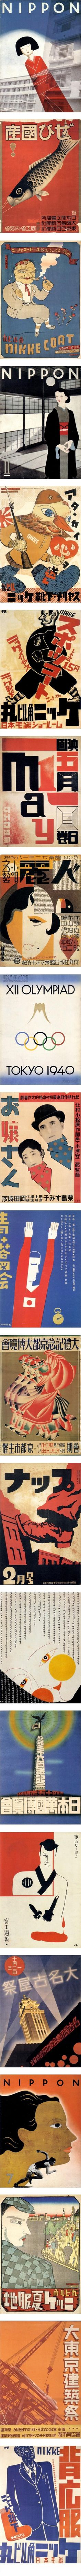 Collection of Japanese Graphic Design From The 1920s 30s #graphic design #poster #posters #japanese